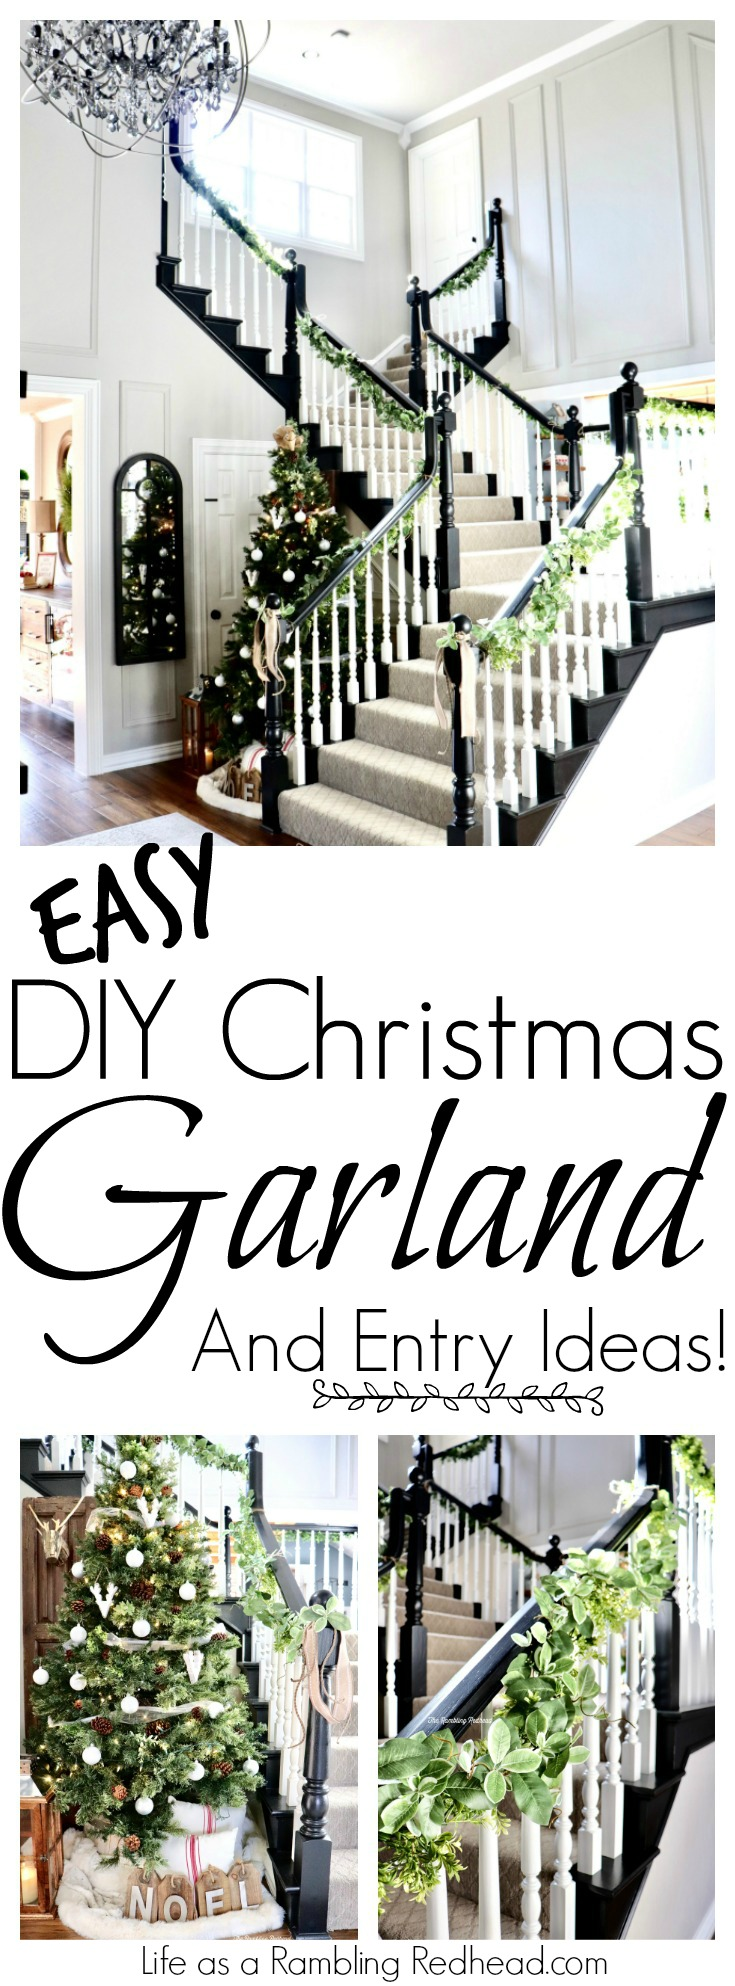 Easy Diy Christmas Garland Tutorial And Entry Ideas This Ain T Your Mama S Garland Life As A Rambling Redhead